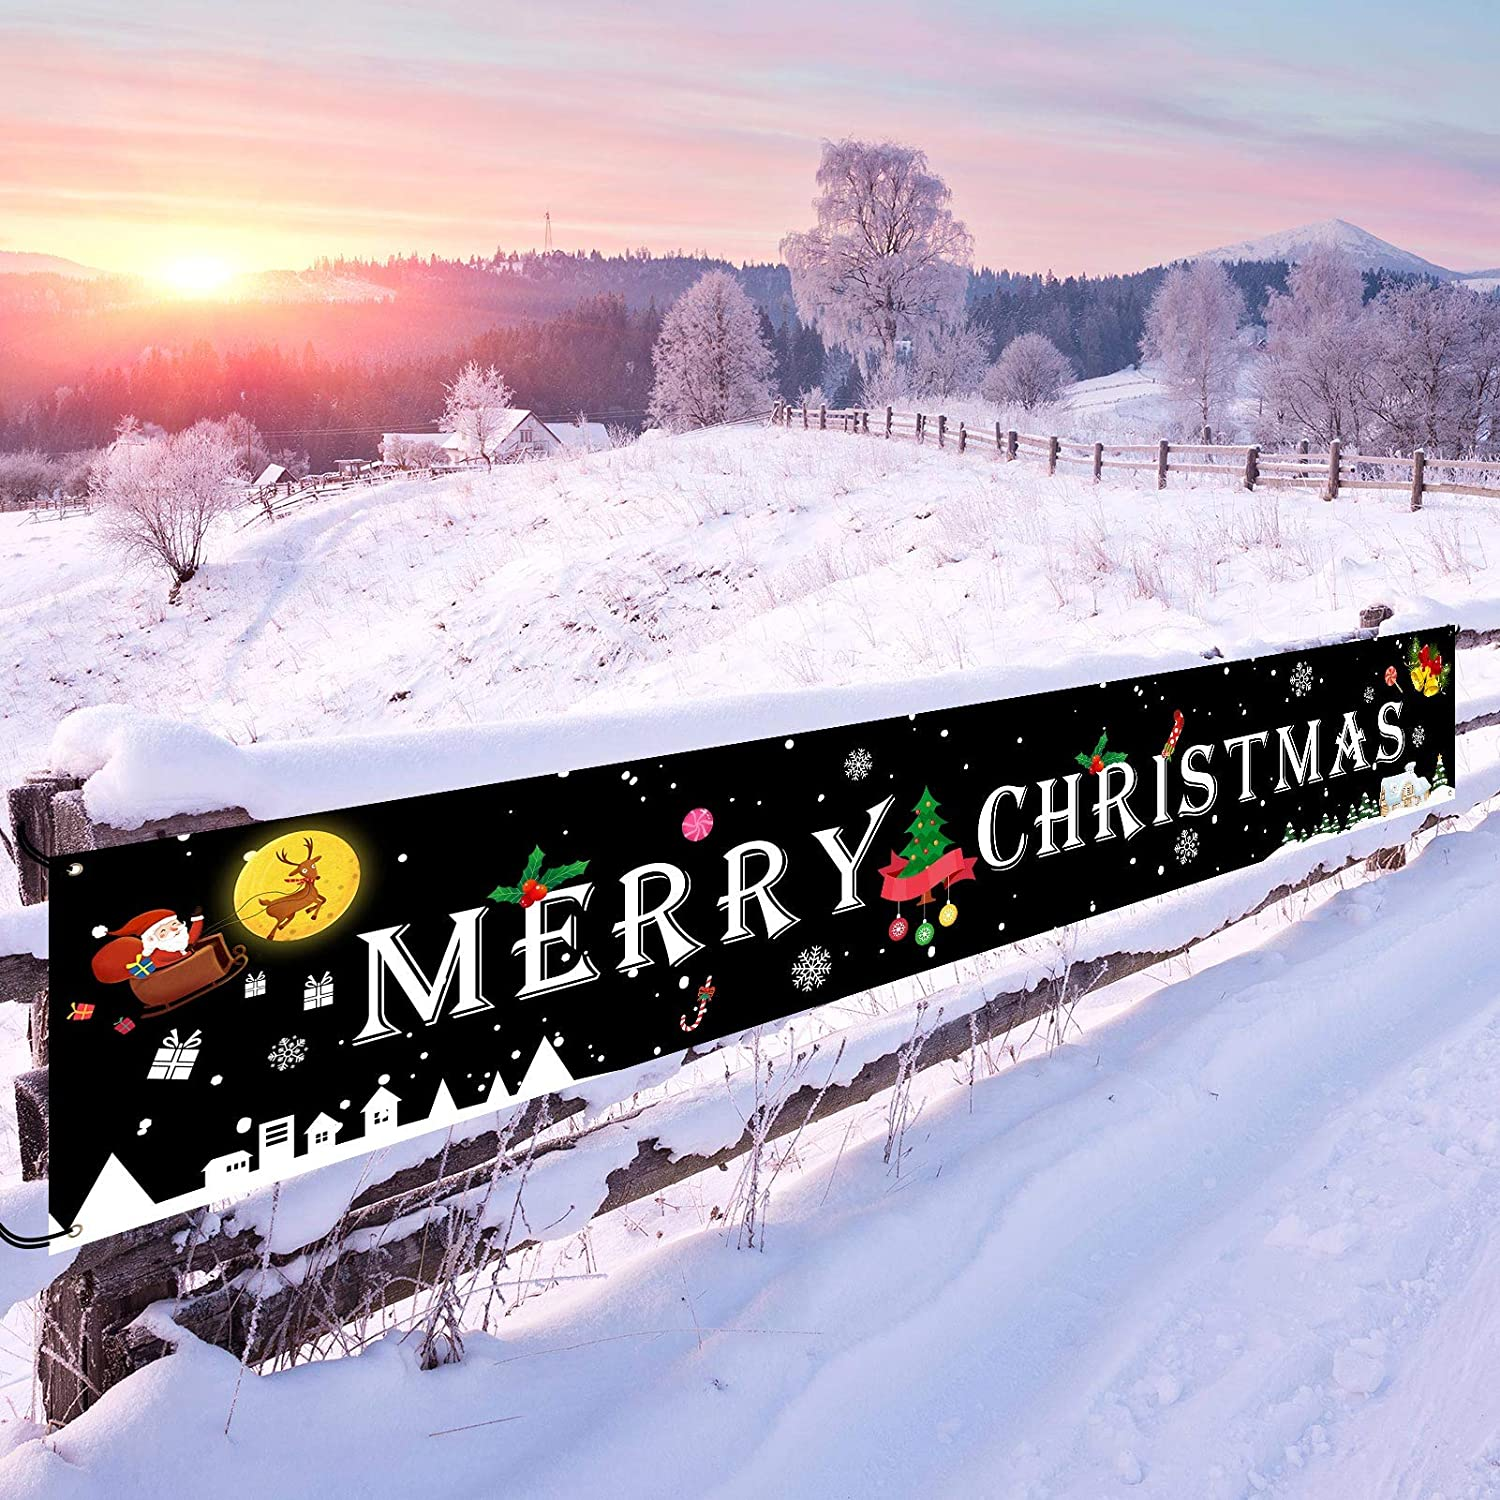 Merry Christmas Banner, Black Large Signs Outdoor Christmas Decorations for Yard Wall Party Home Decor Xmas Ornaments